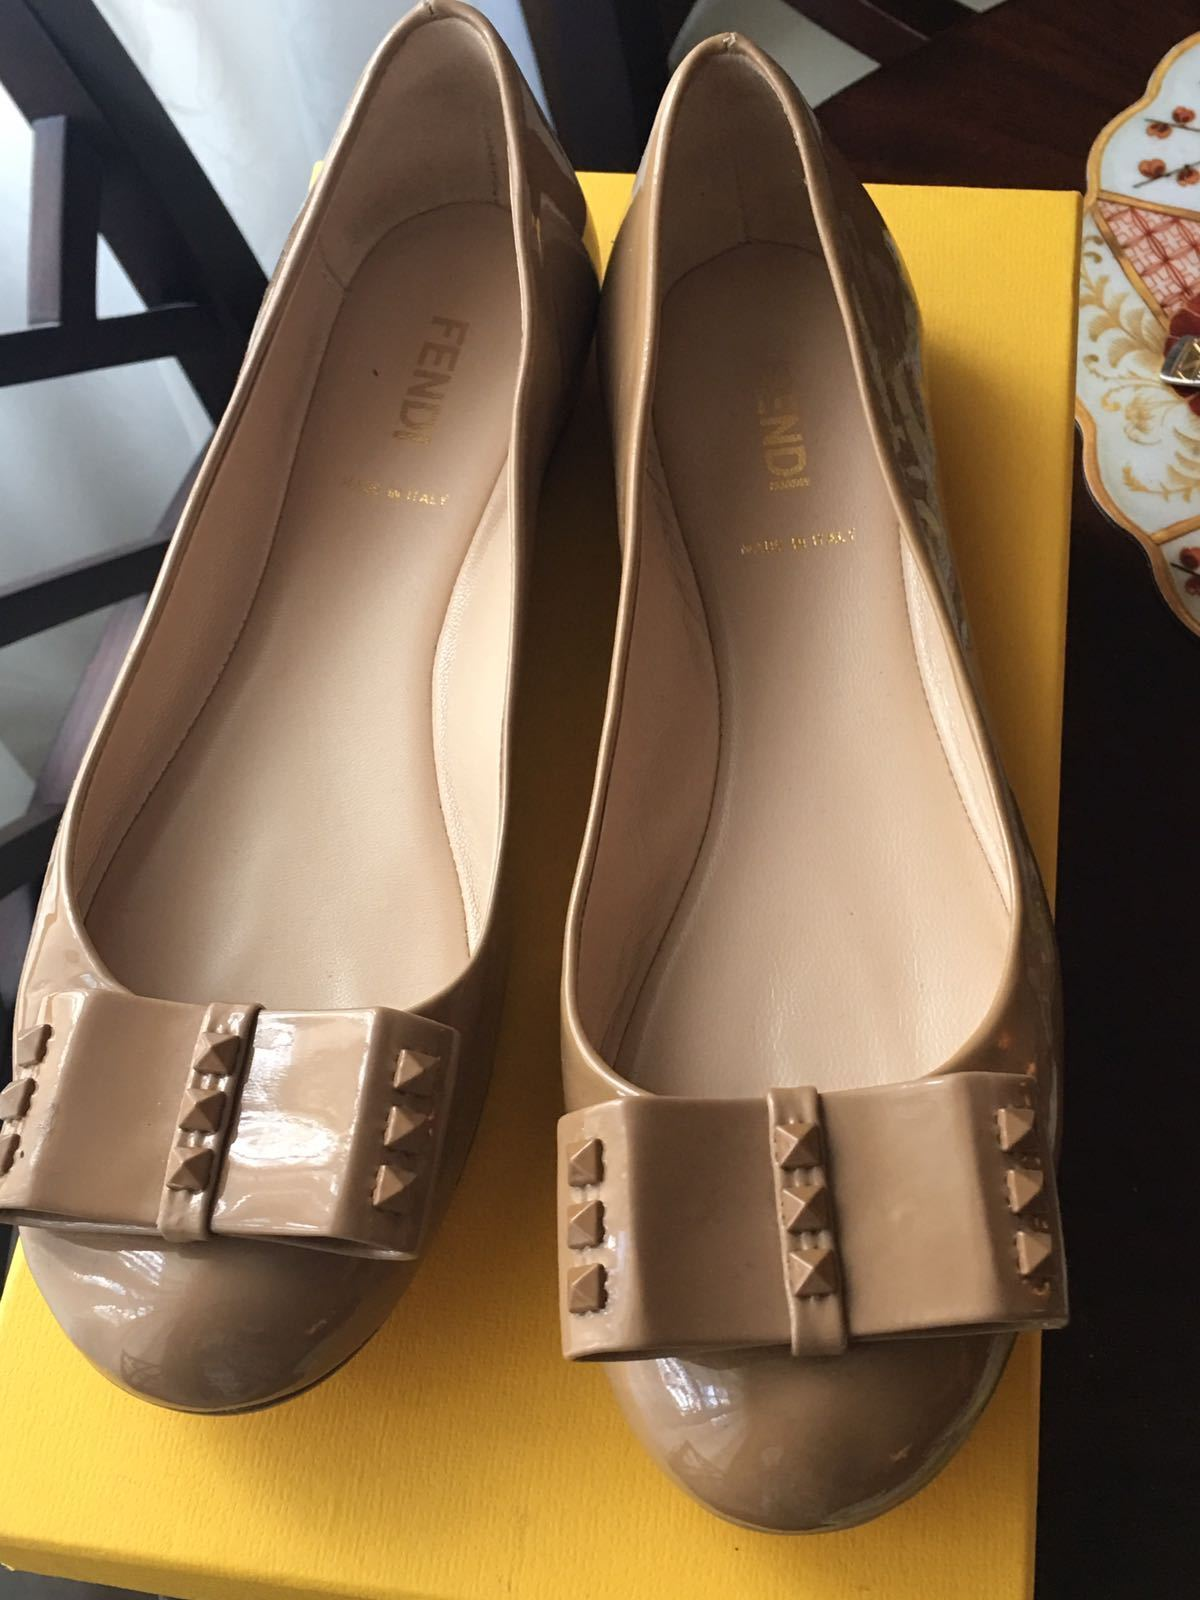 negozi al dettaglio Donna  Fendi Flats Flats Flats with Studded Bow, Light Marrone, Dimensione 9 (US)  autentico online